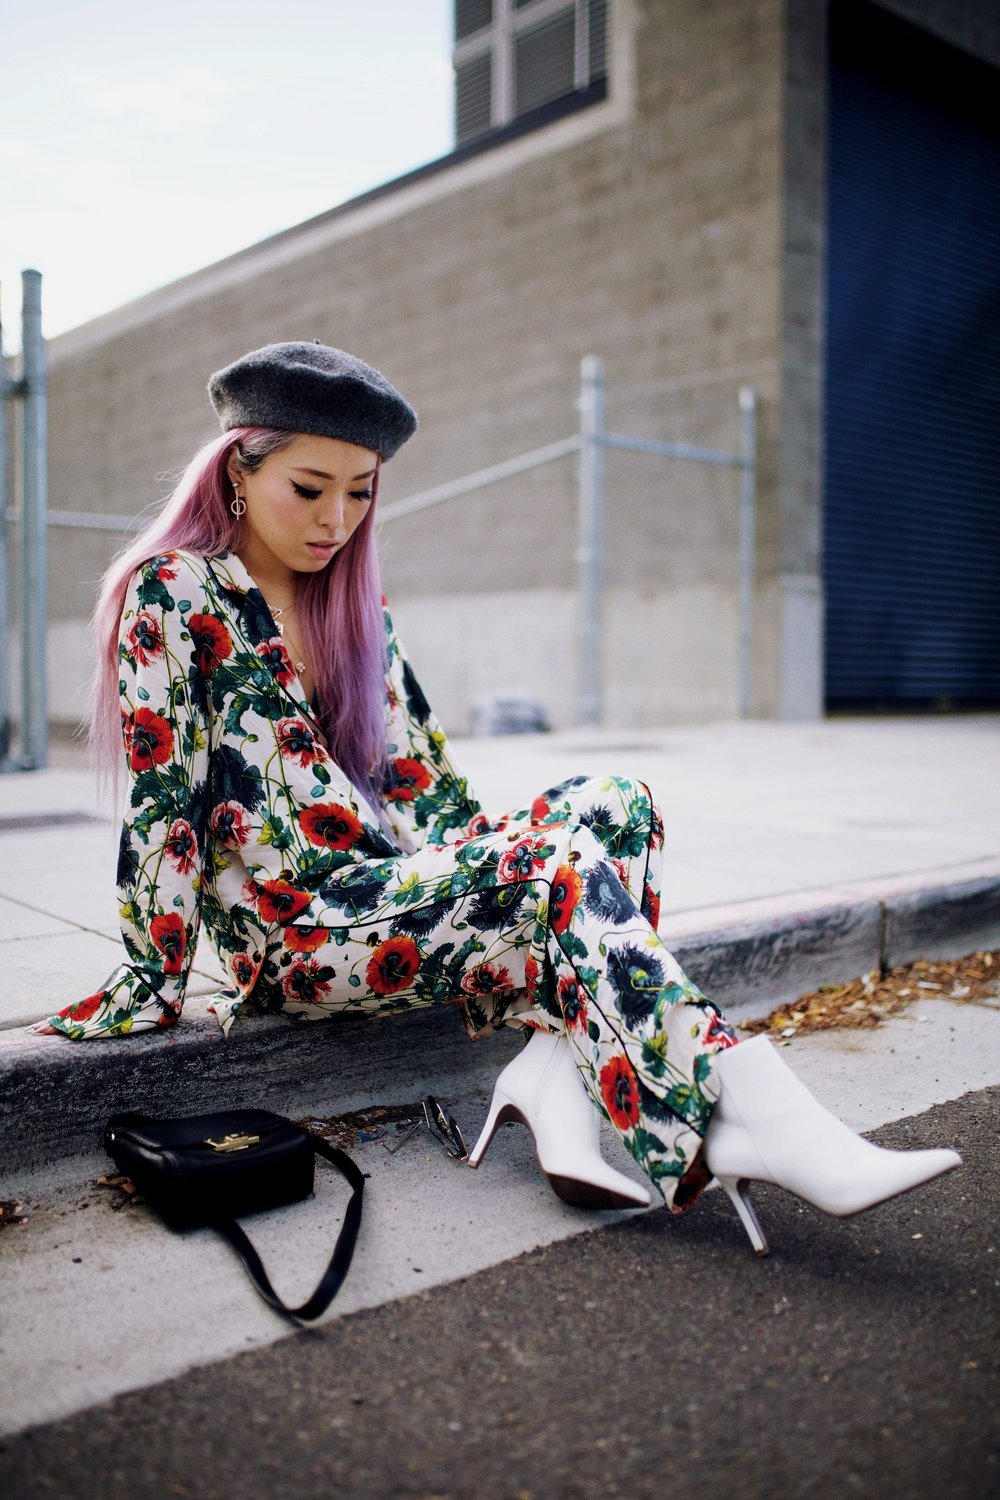 H&M Floral Pajama-Forever 21 Gray Beret & White Ankle Boots-Swarovski Earrings & Necklaces-Pink hair-Petite-Fashion Style Seattle Blogger From Japan